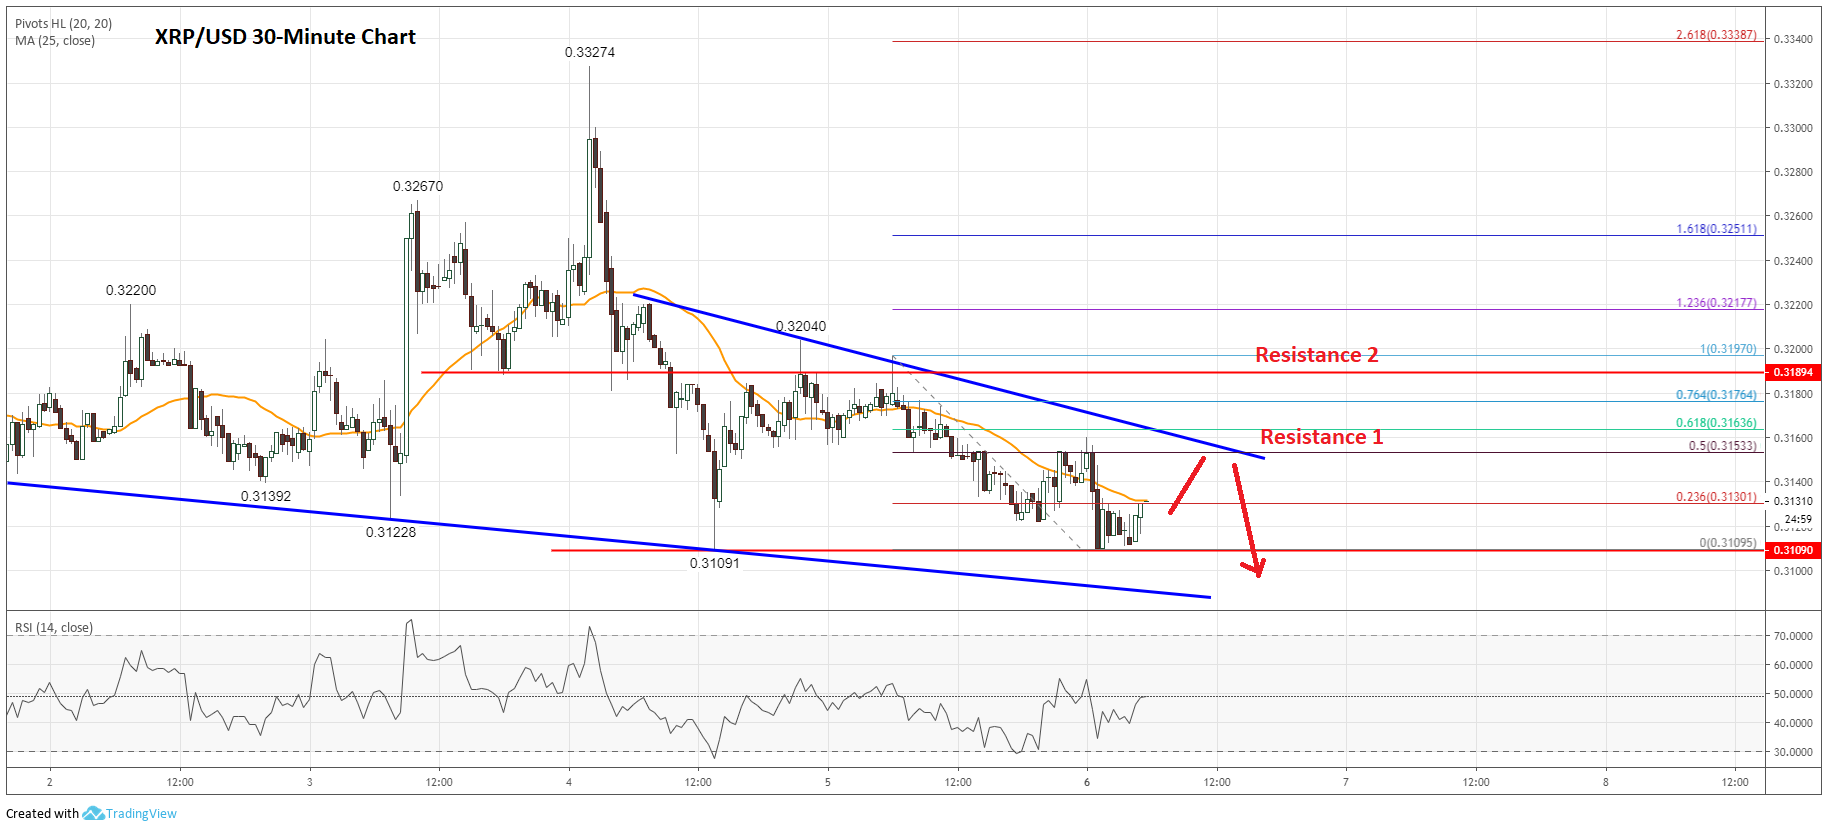 Ripple (XRP) Price Analysis: Clear Risk of Further Declines